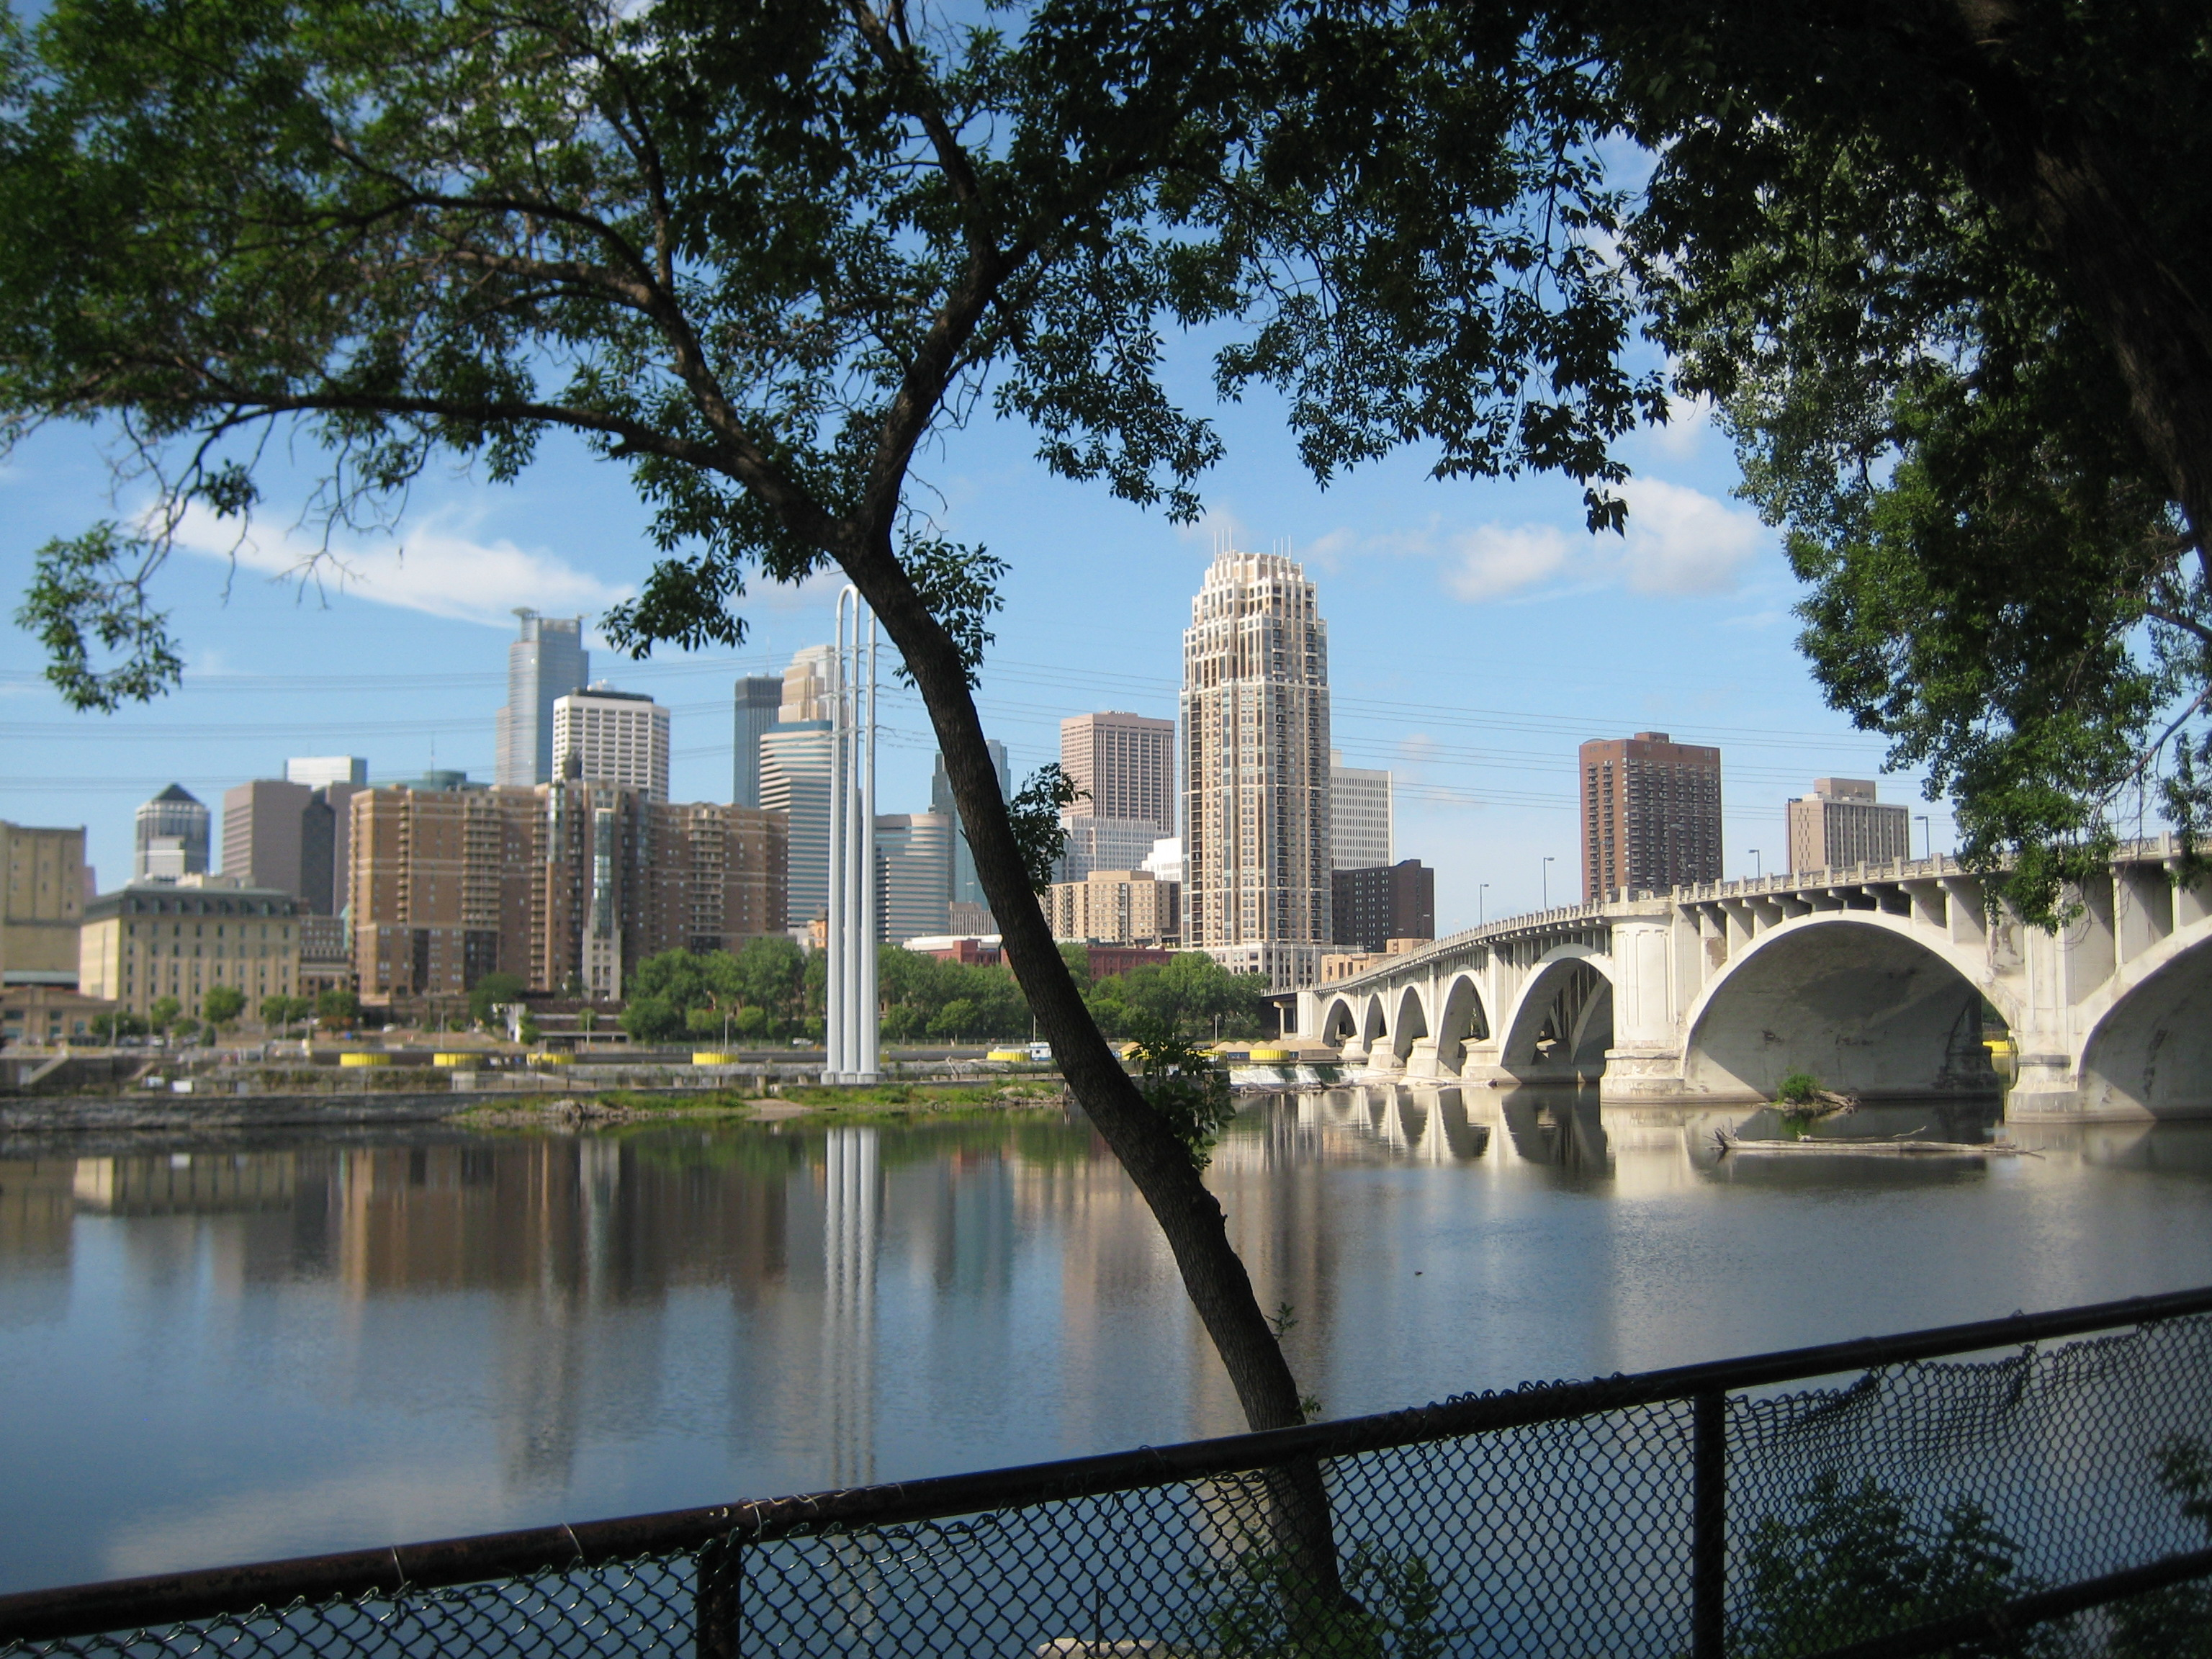 On the Minneapolis RiverFront, across from St. Anthony Main:   This River Rocks! (And the town ain't bad either....)